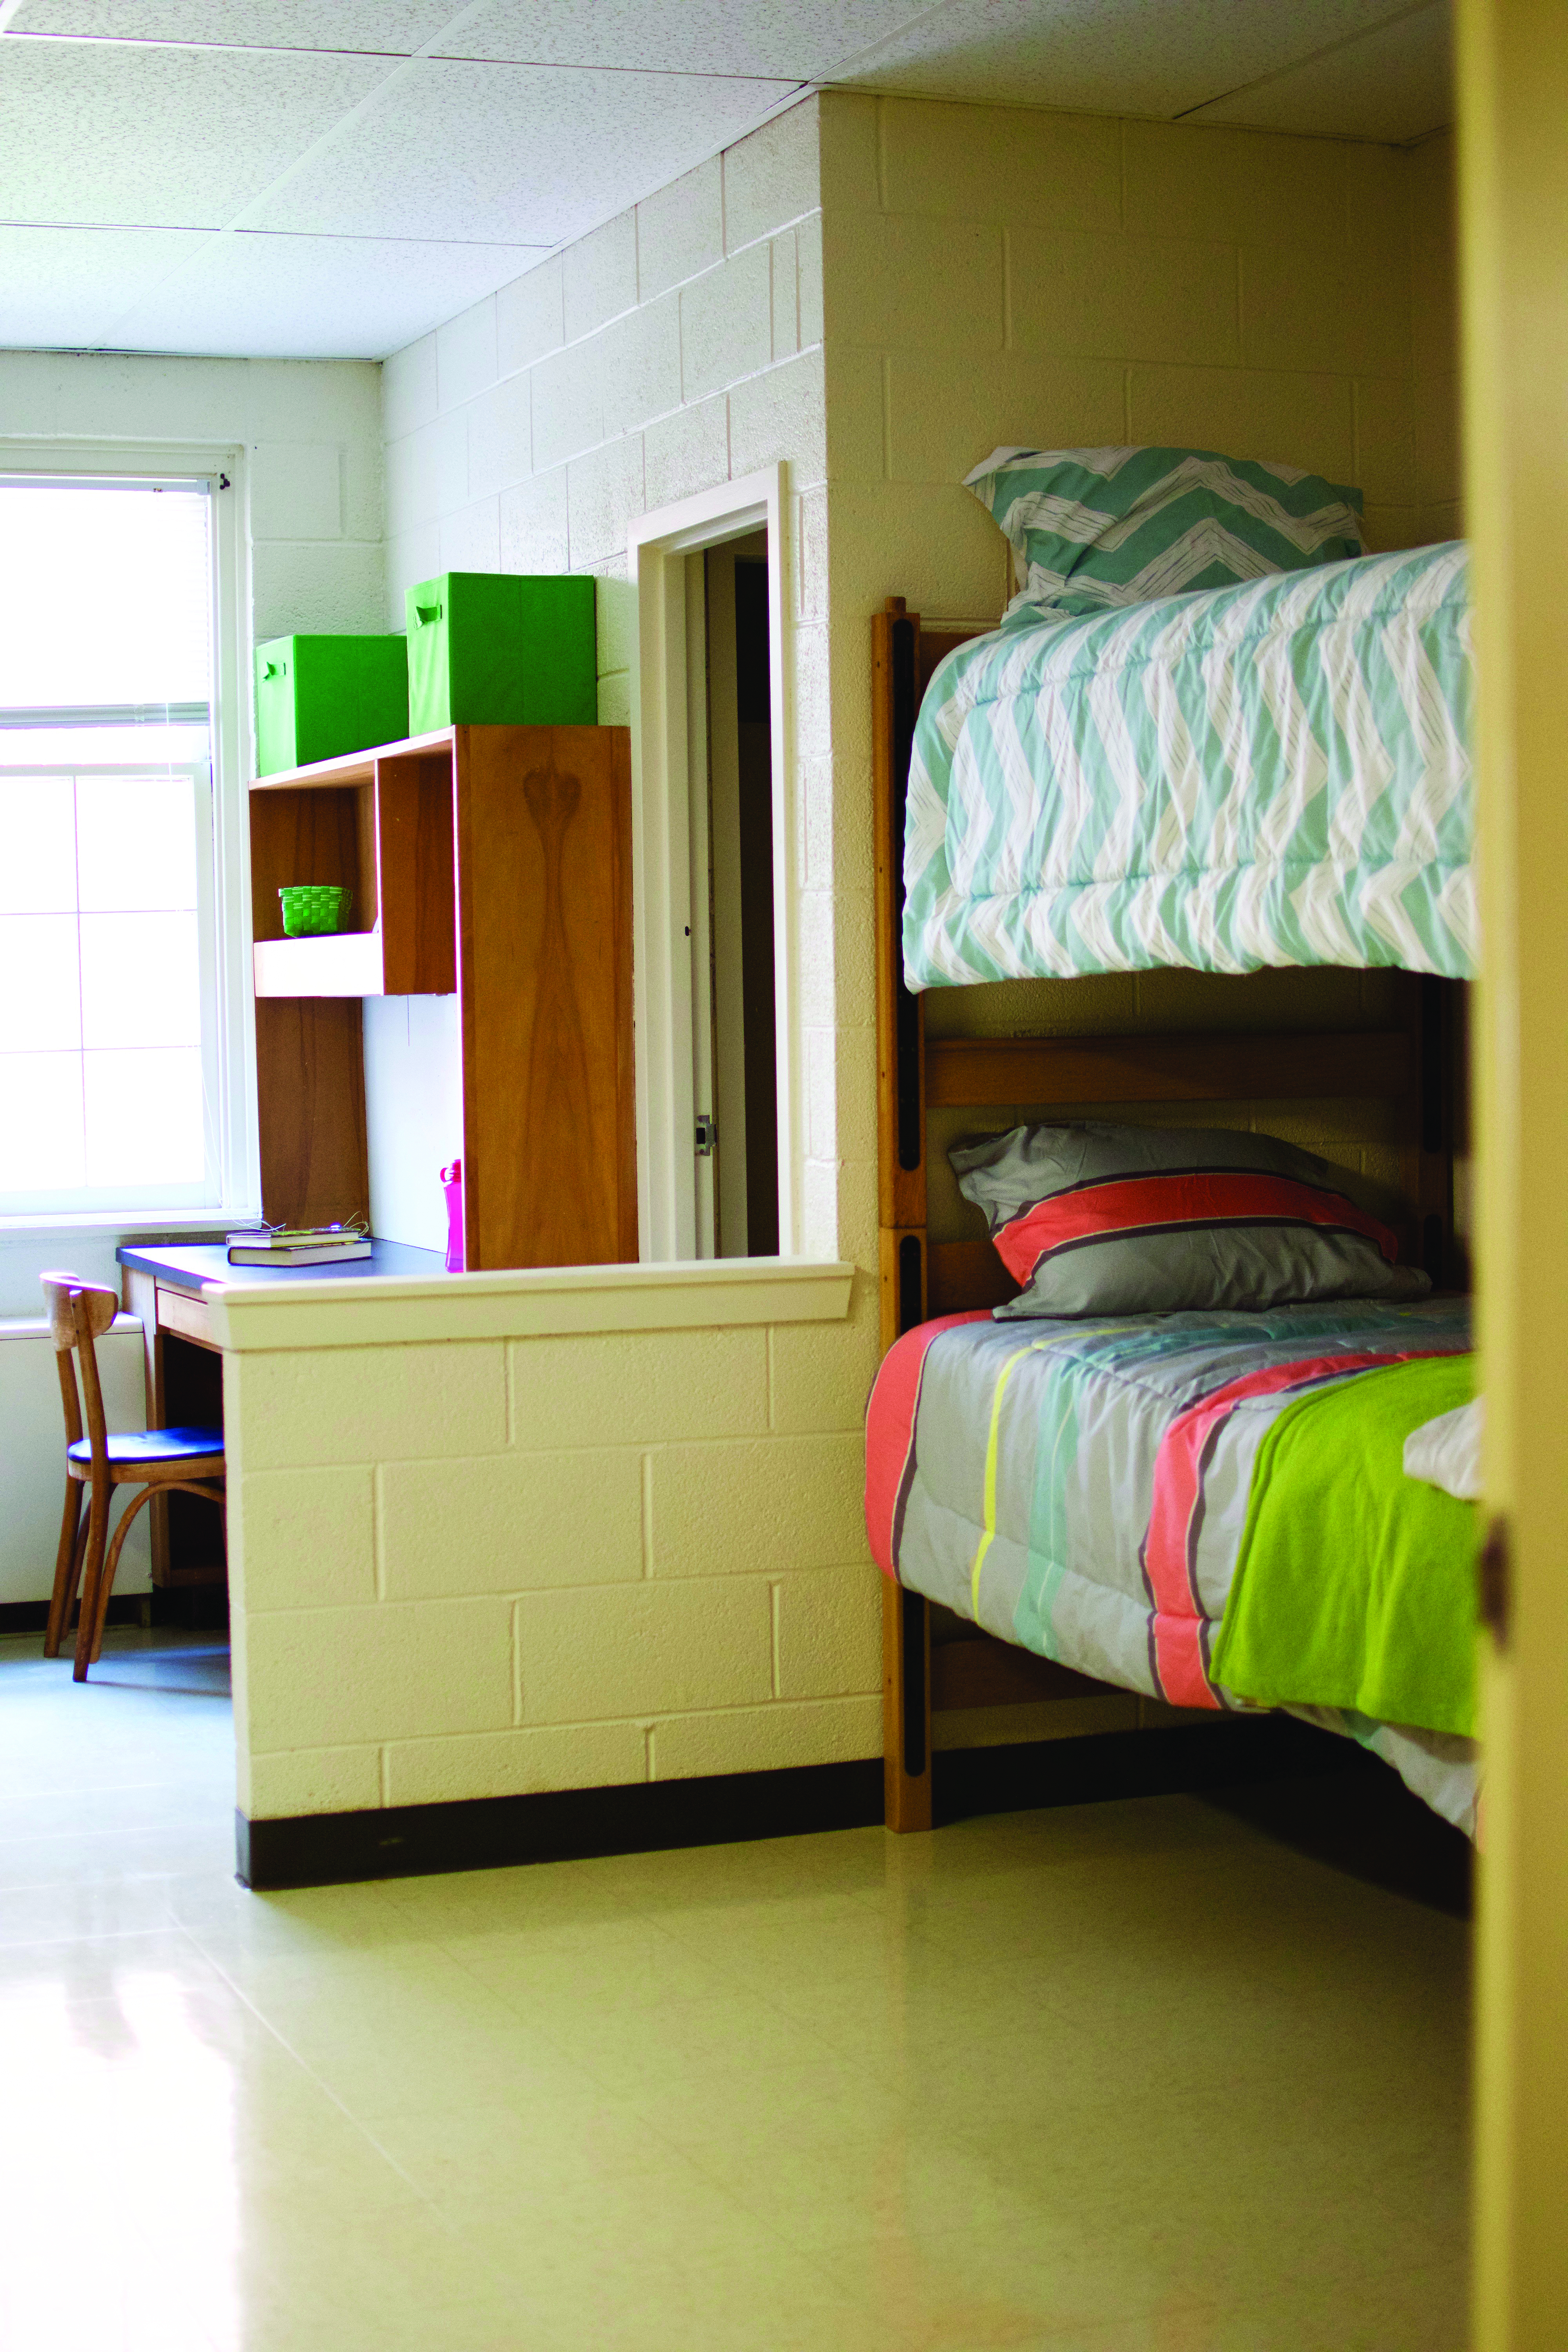 Hill Hall Refreshed Room